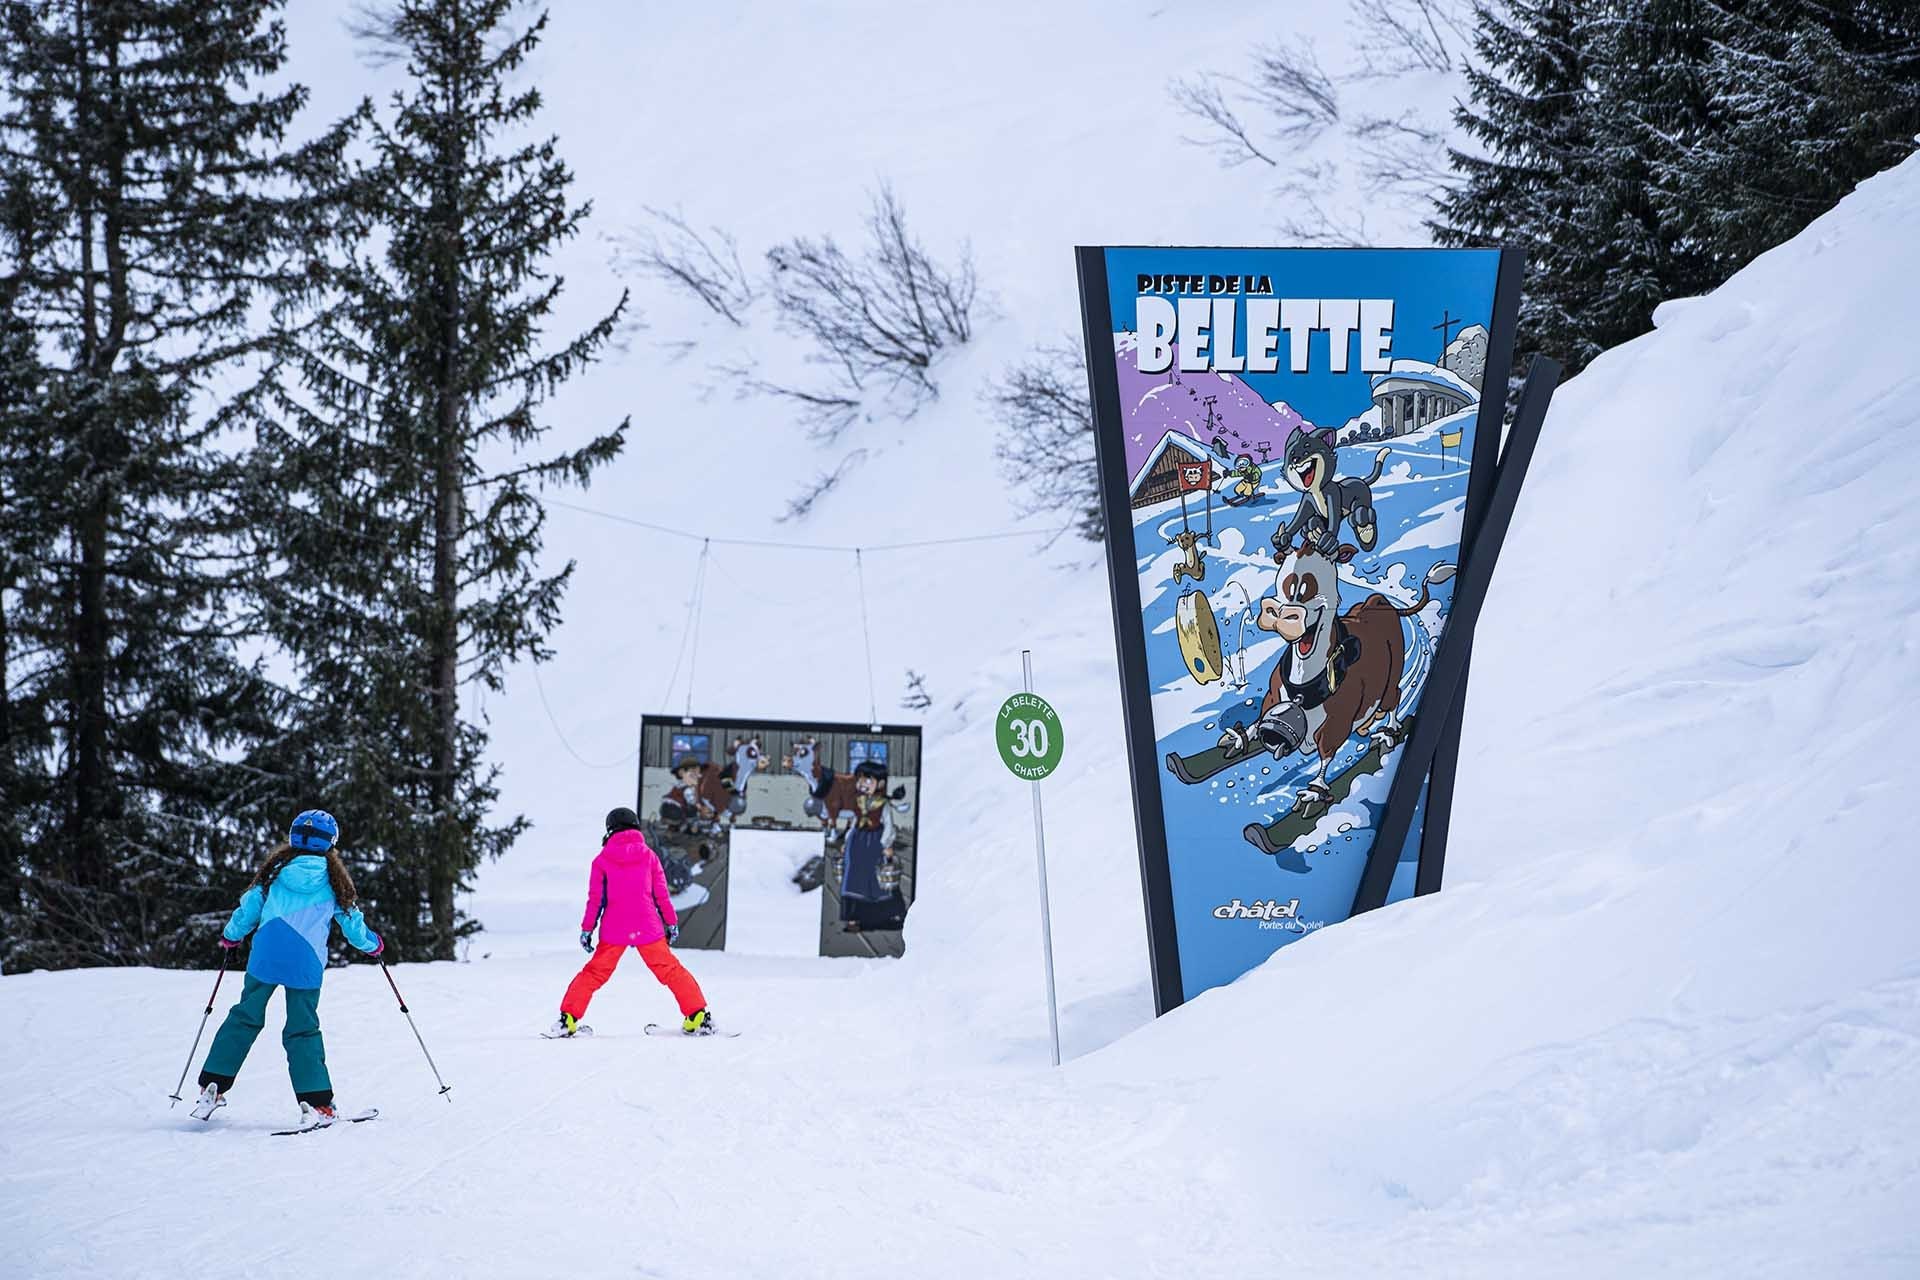 The fun slope Belette